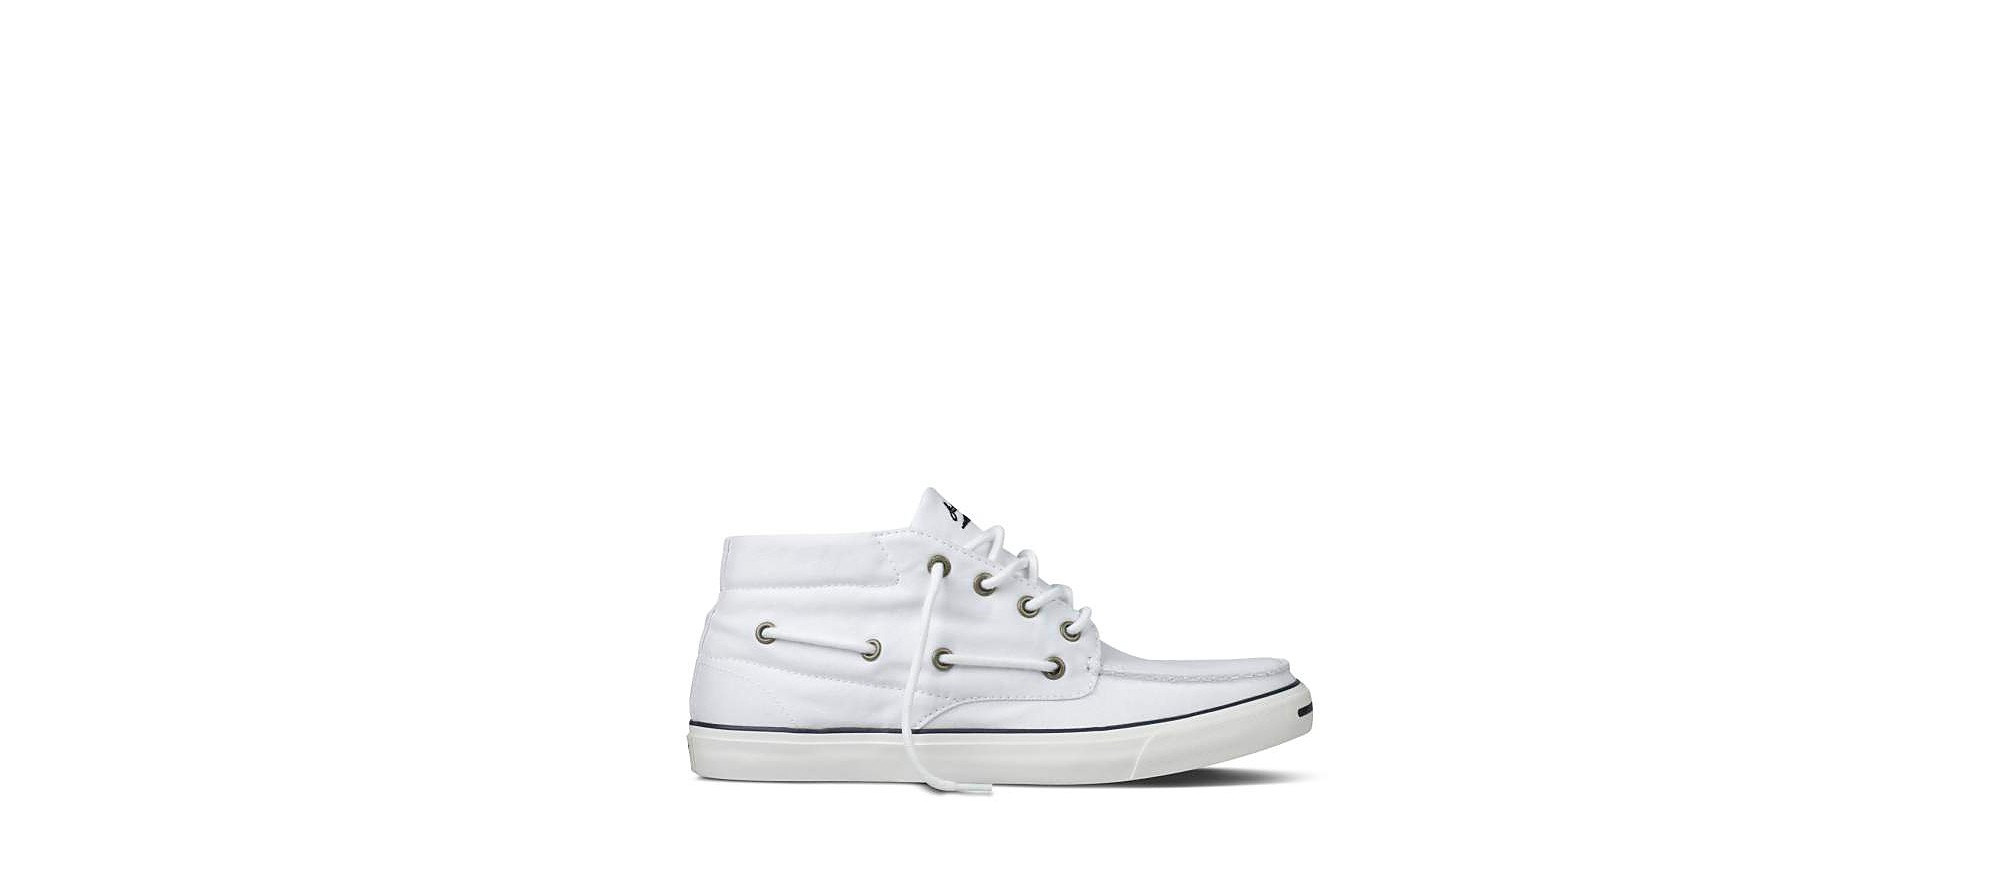 Lyst - Converse Jack Purcell Mid Rise Boat Shoe in White for Men 3d83c080956f